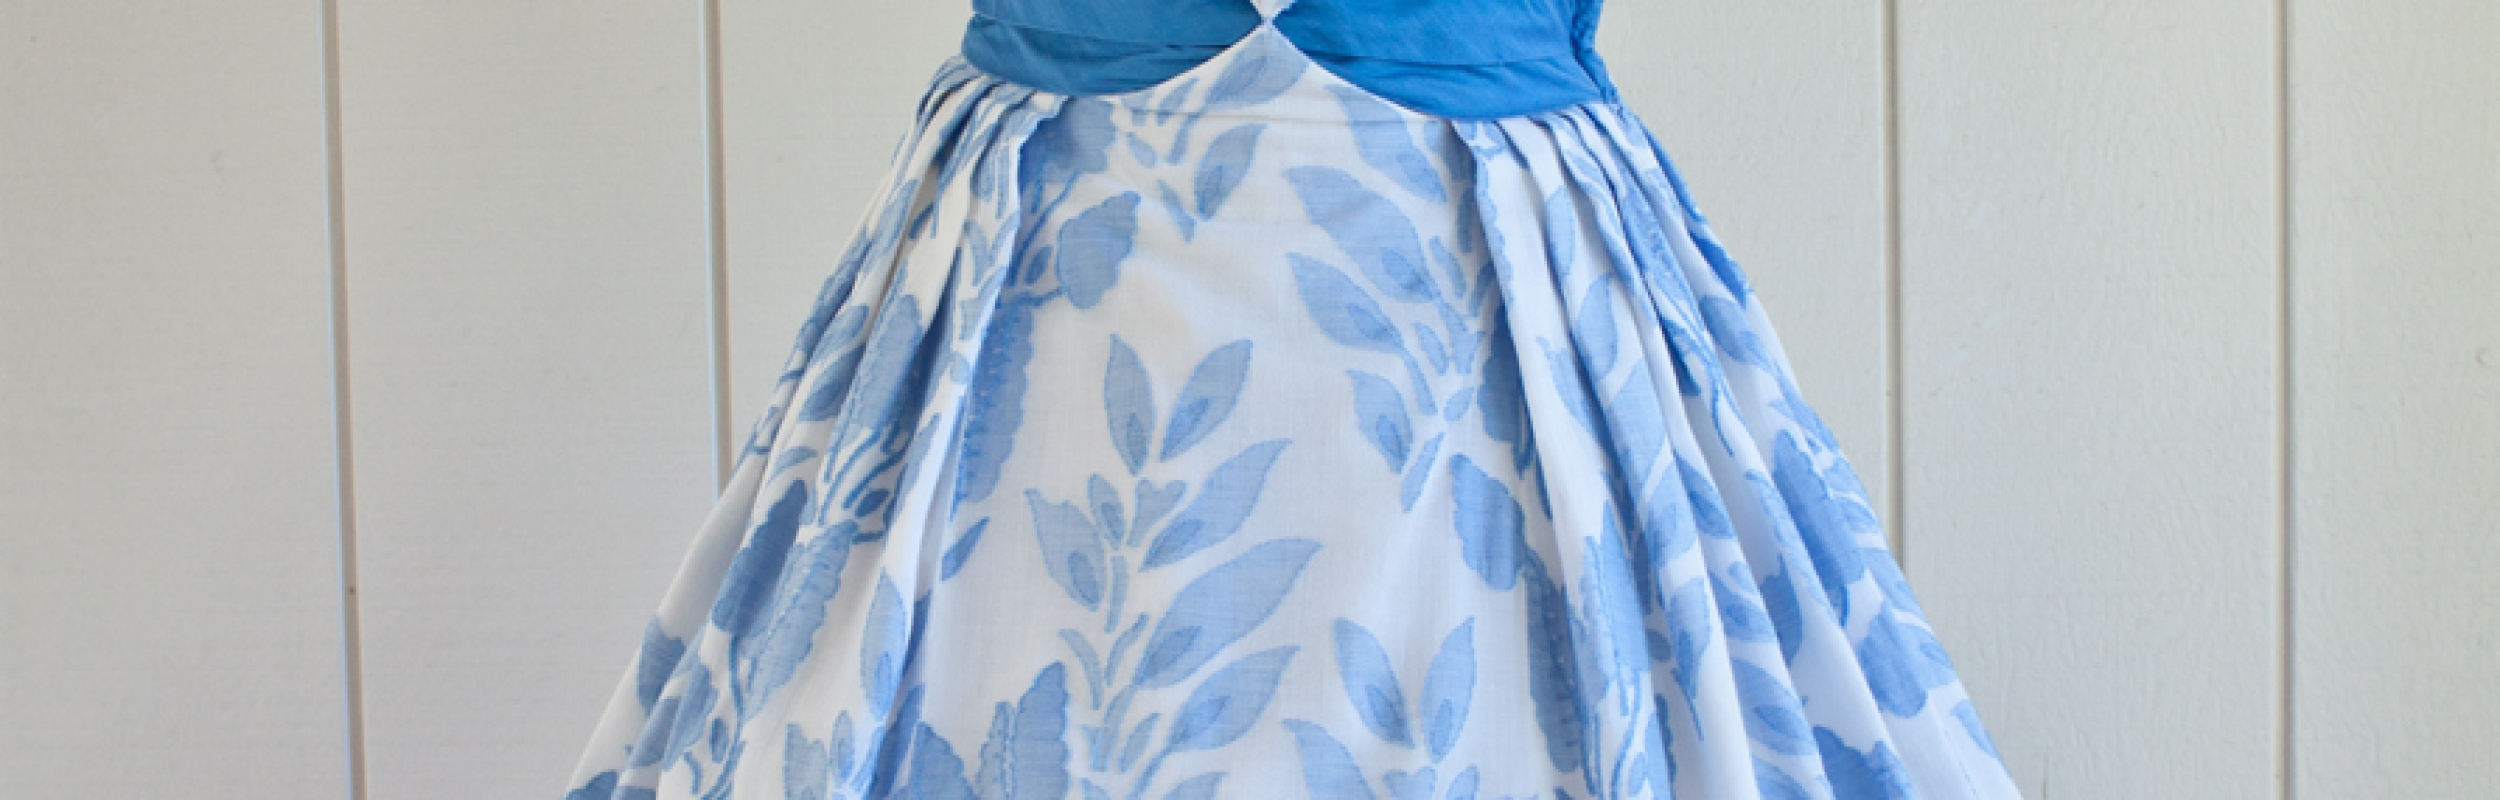 50s Blue White Dress with Blue Middle 1